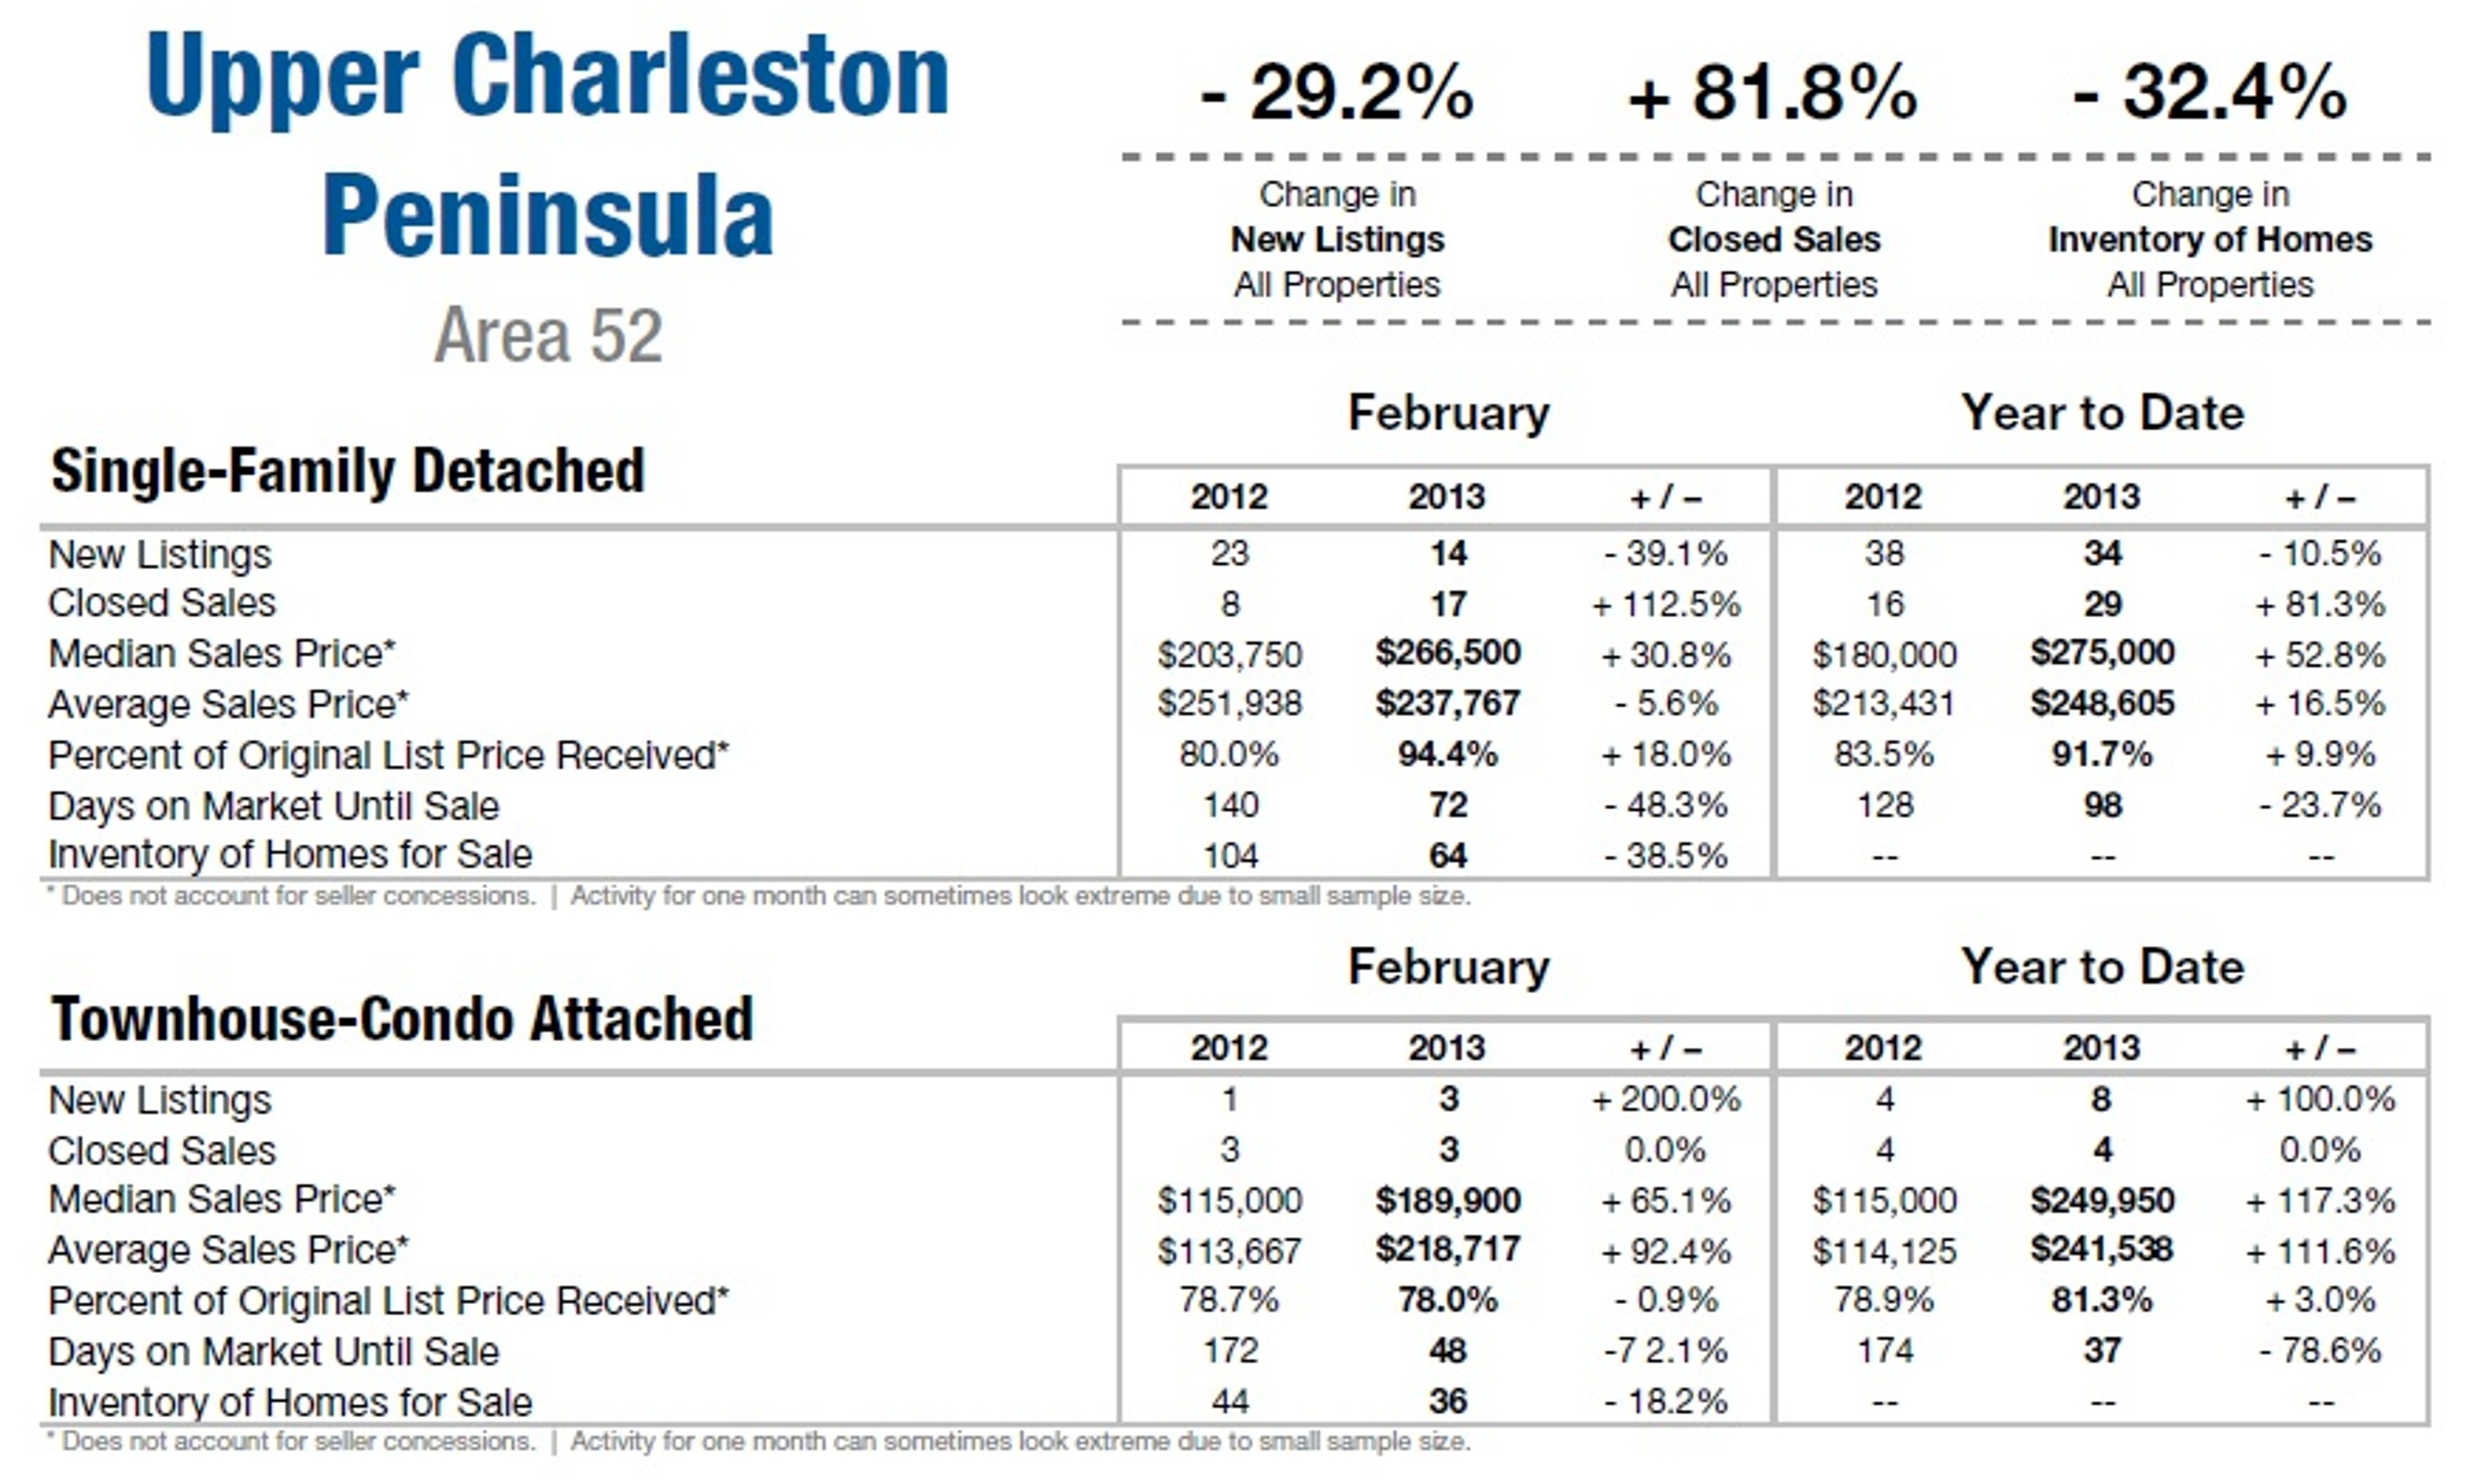 Charleston SC Area 52 Feb. 2013 Market Update